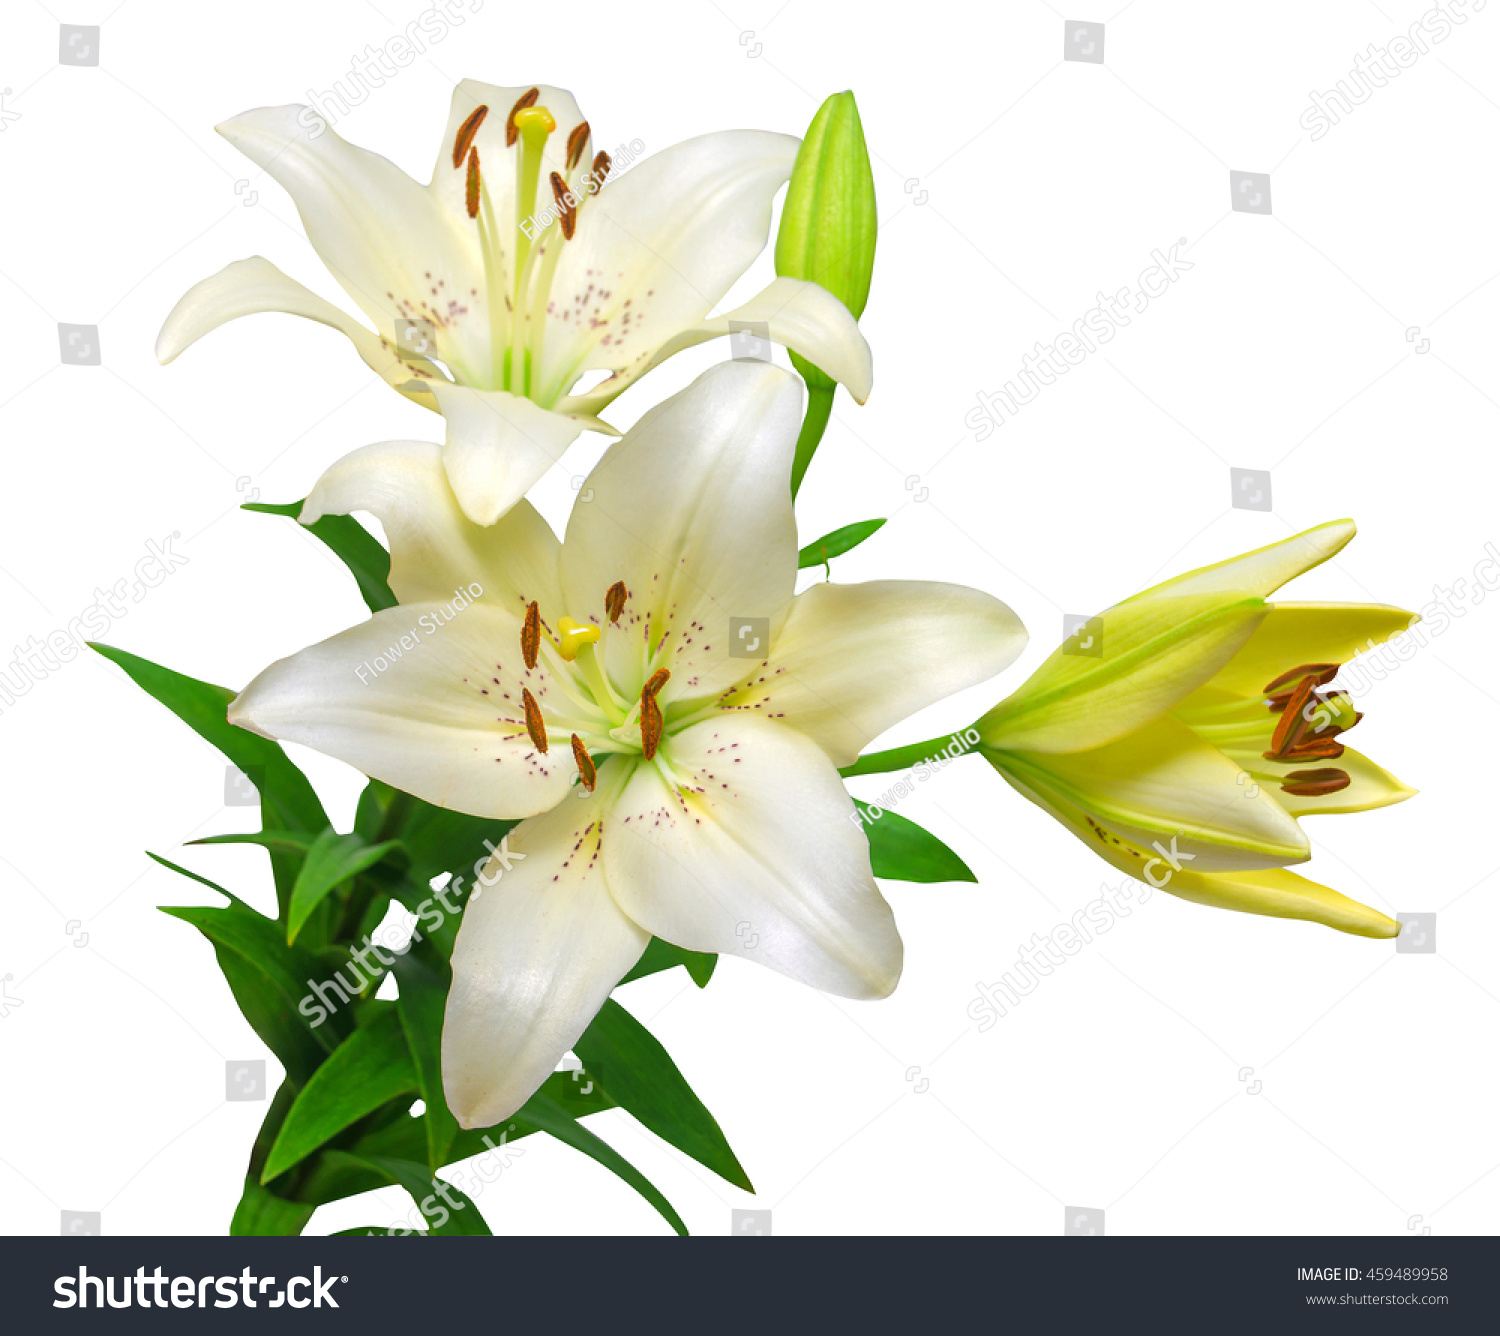 Bouquet beautiful white lily flowers isolated stock photo edit now bouquet of beautiful white lily flowers isolated on white background izmirmasajfo